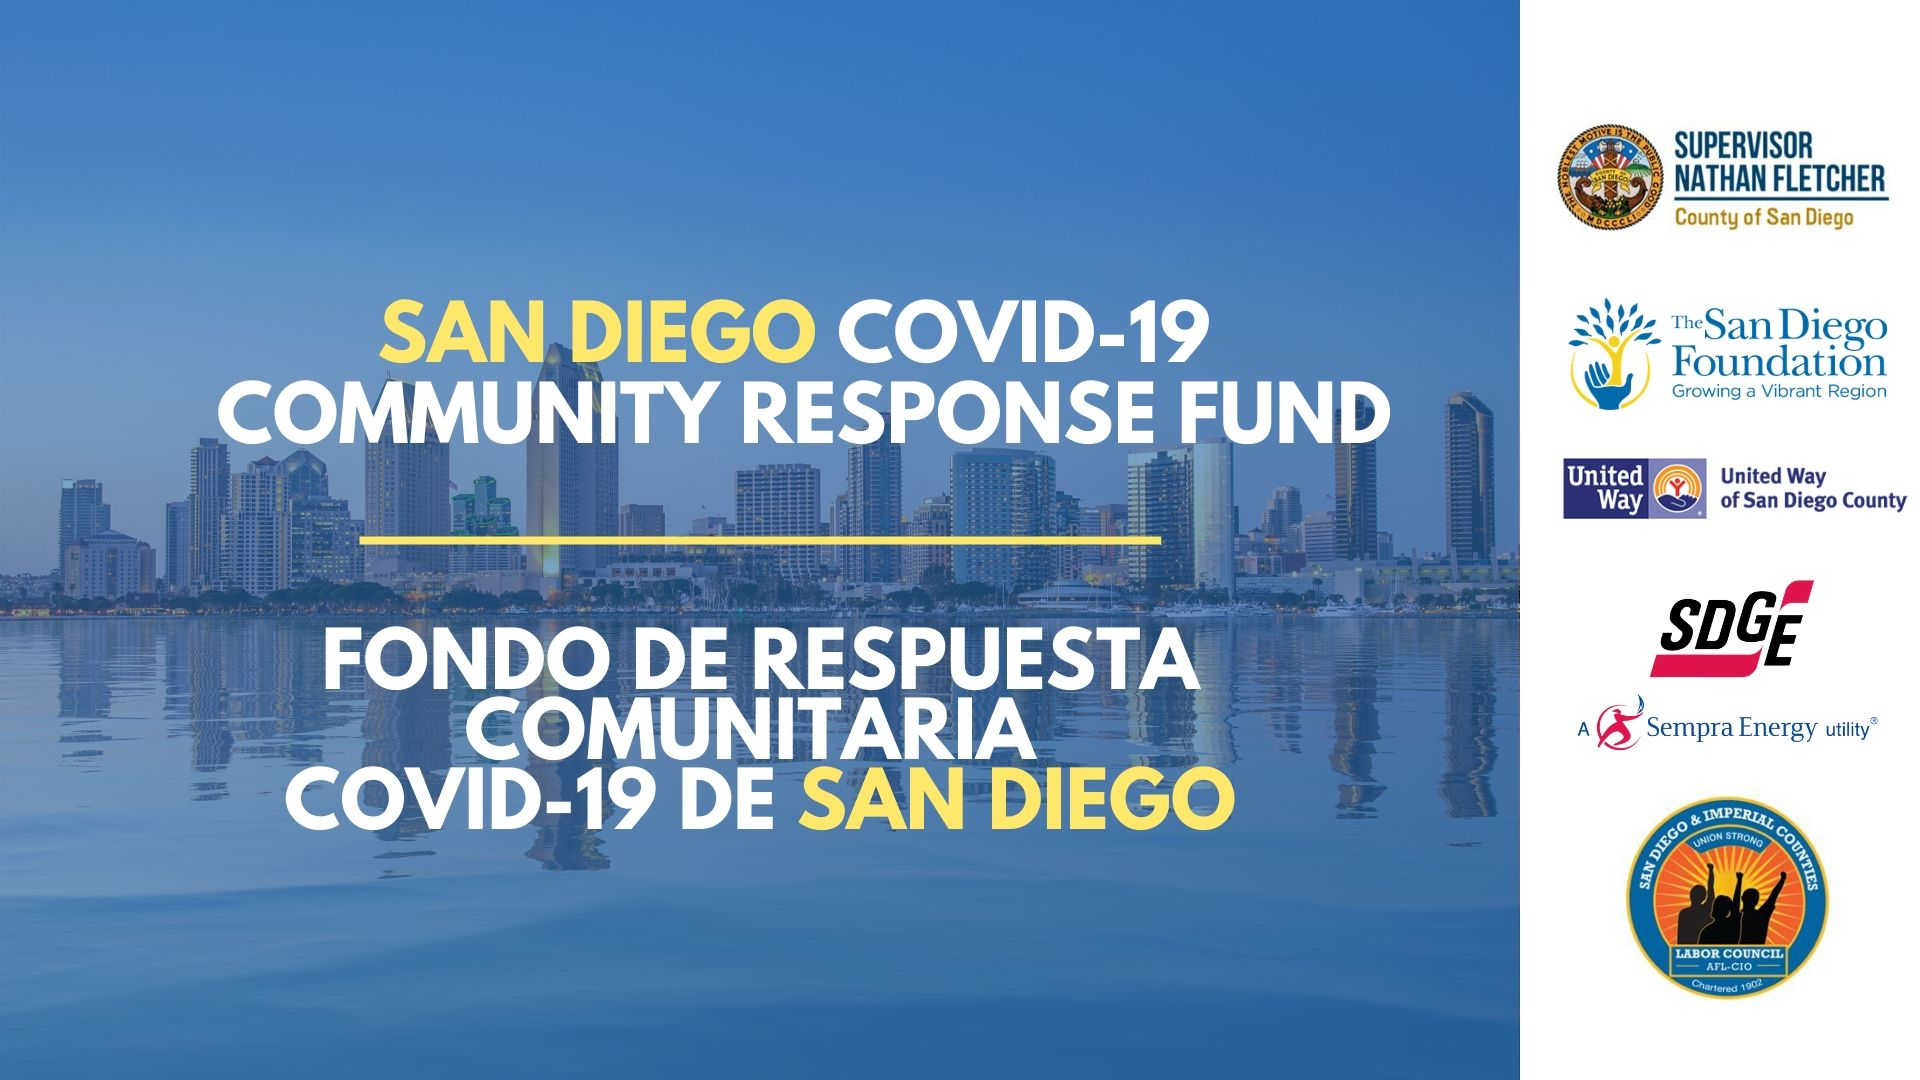 San Diego Leaders Launch COVID-19 Community Response Fund to Address San Diegans' Growing Needs Amid Coronavirus Outbreak